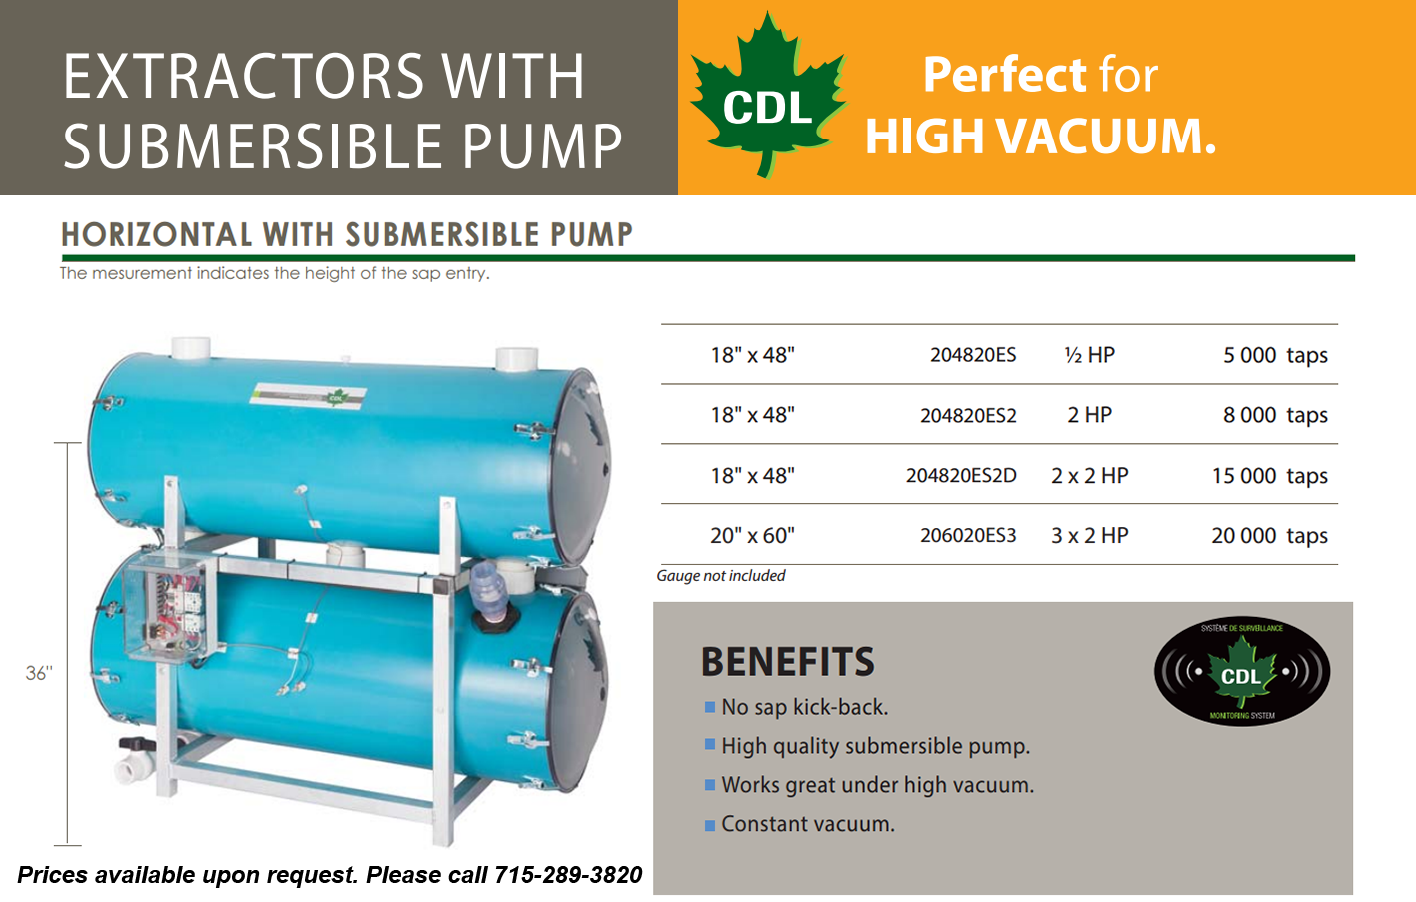 18x48 horizontal with submersible pump-info